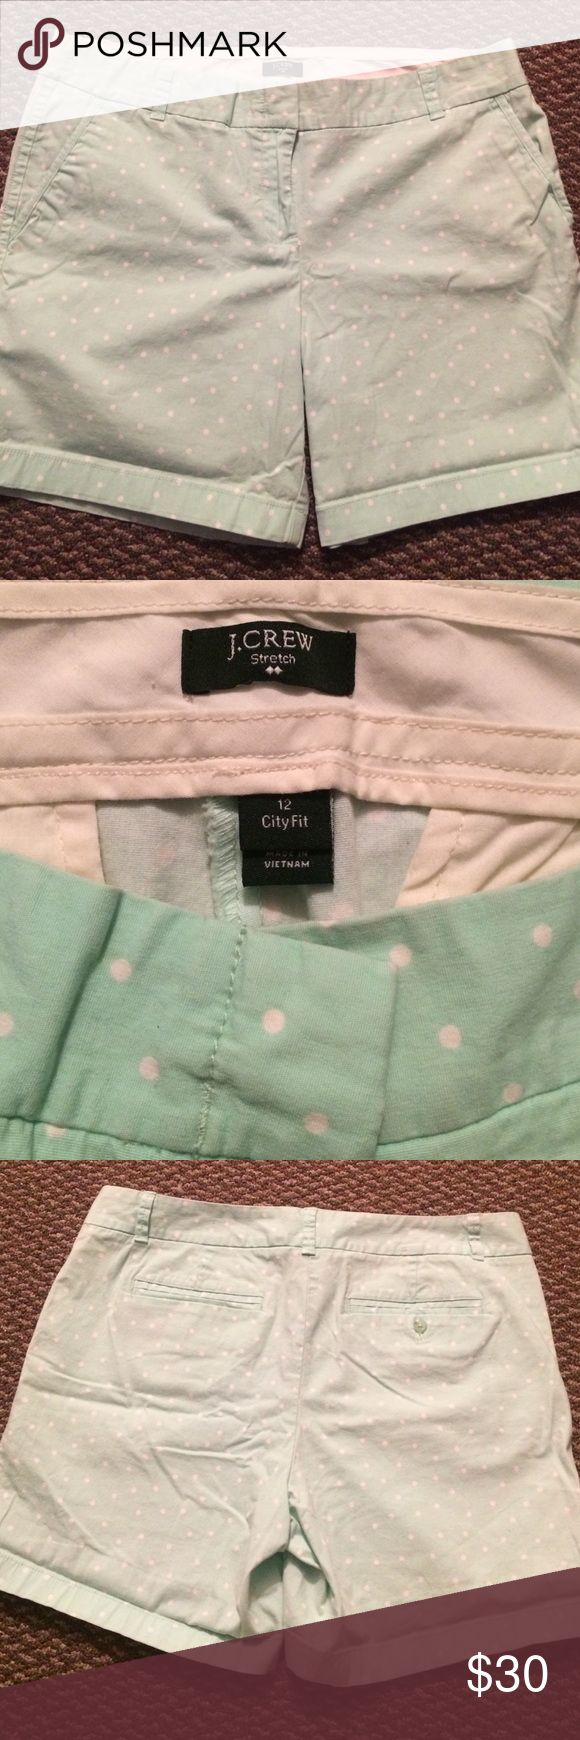 💚Mint green and white polka dot shorts💚 In great EUC! Worn maybe twice, unfortunately they're too big for me now! No stains or rips. J. Crew Shorts